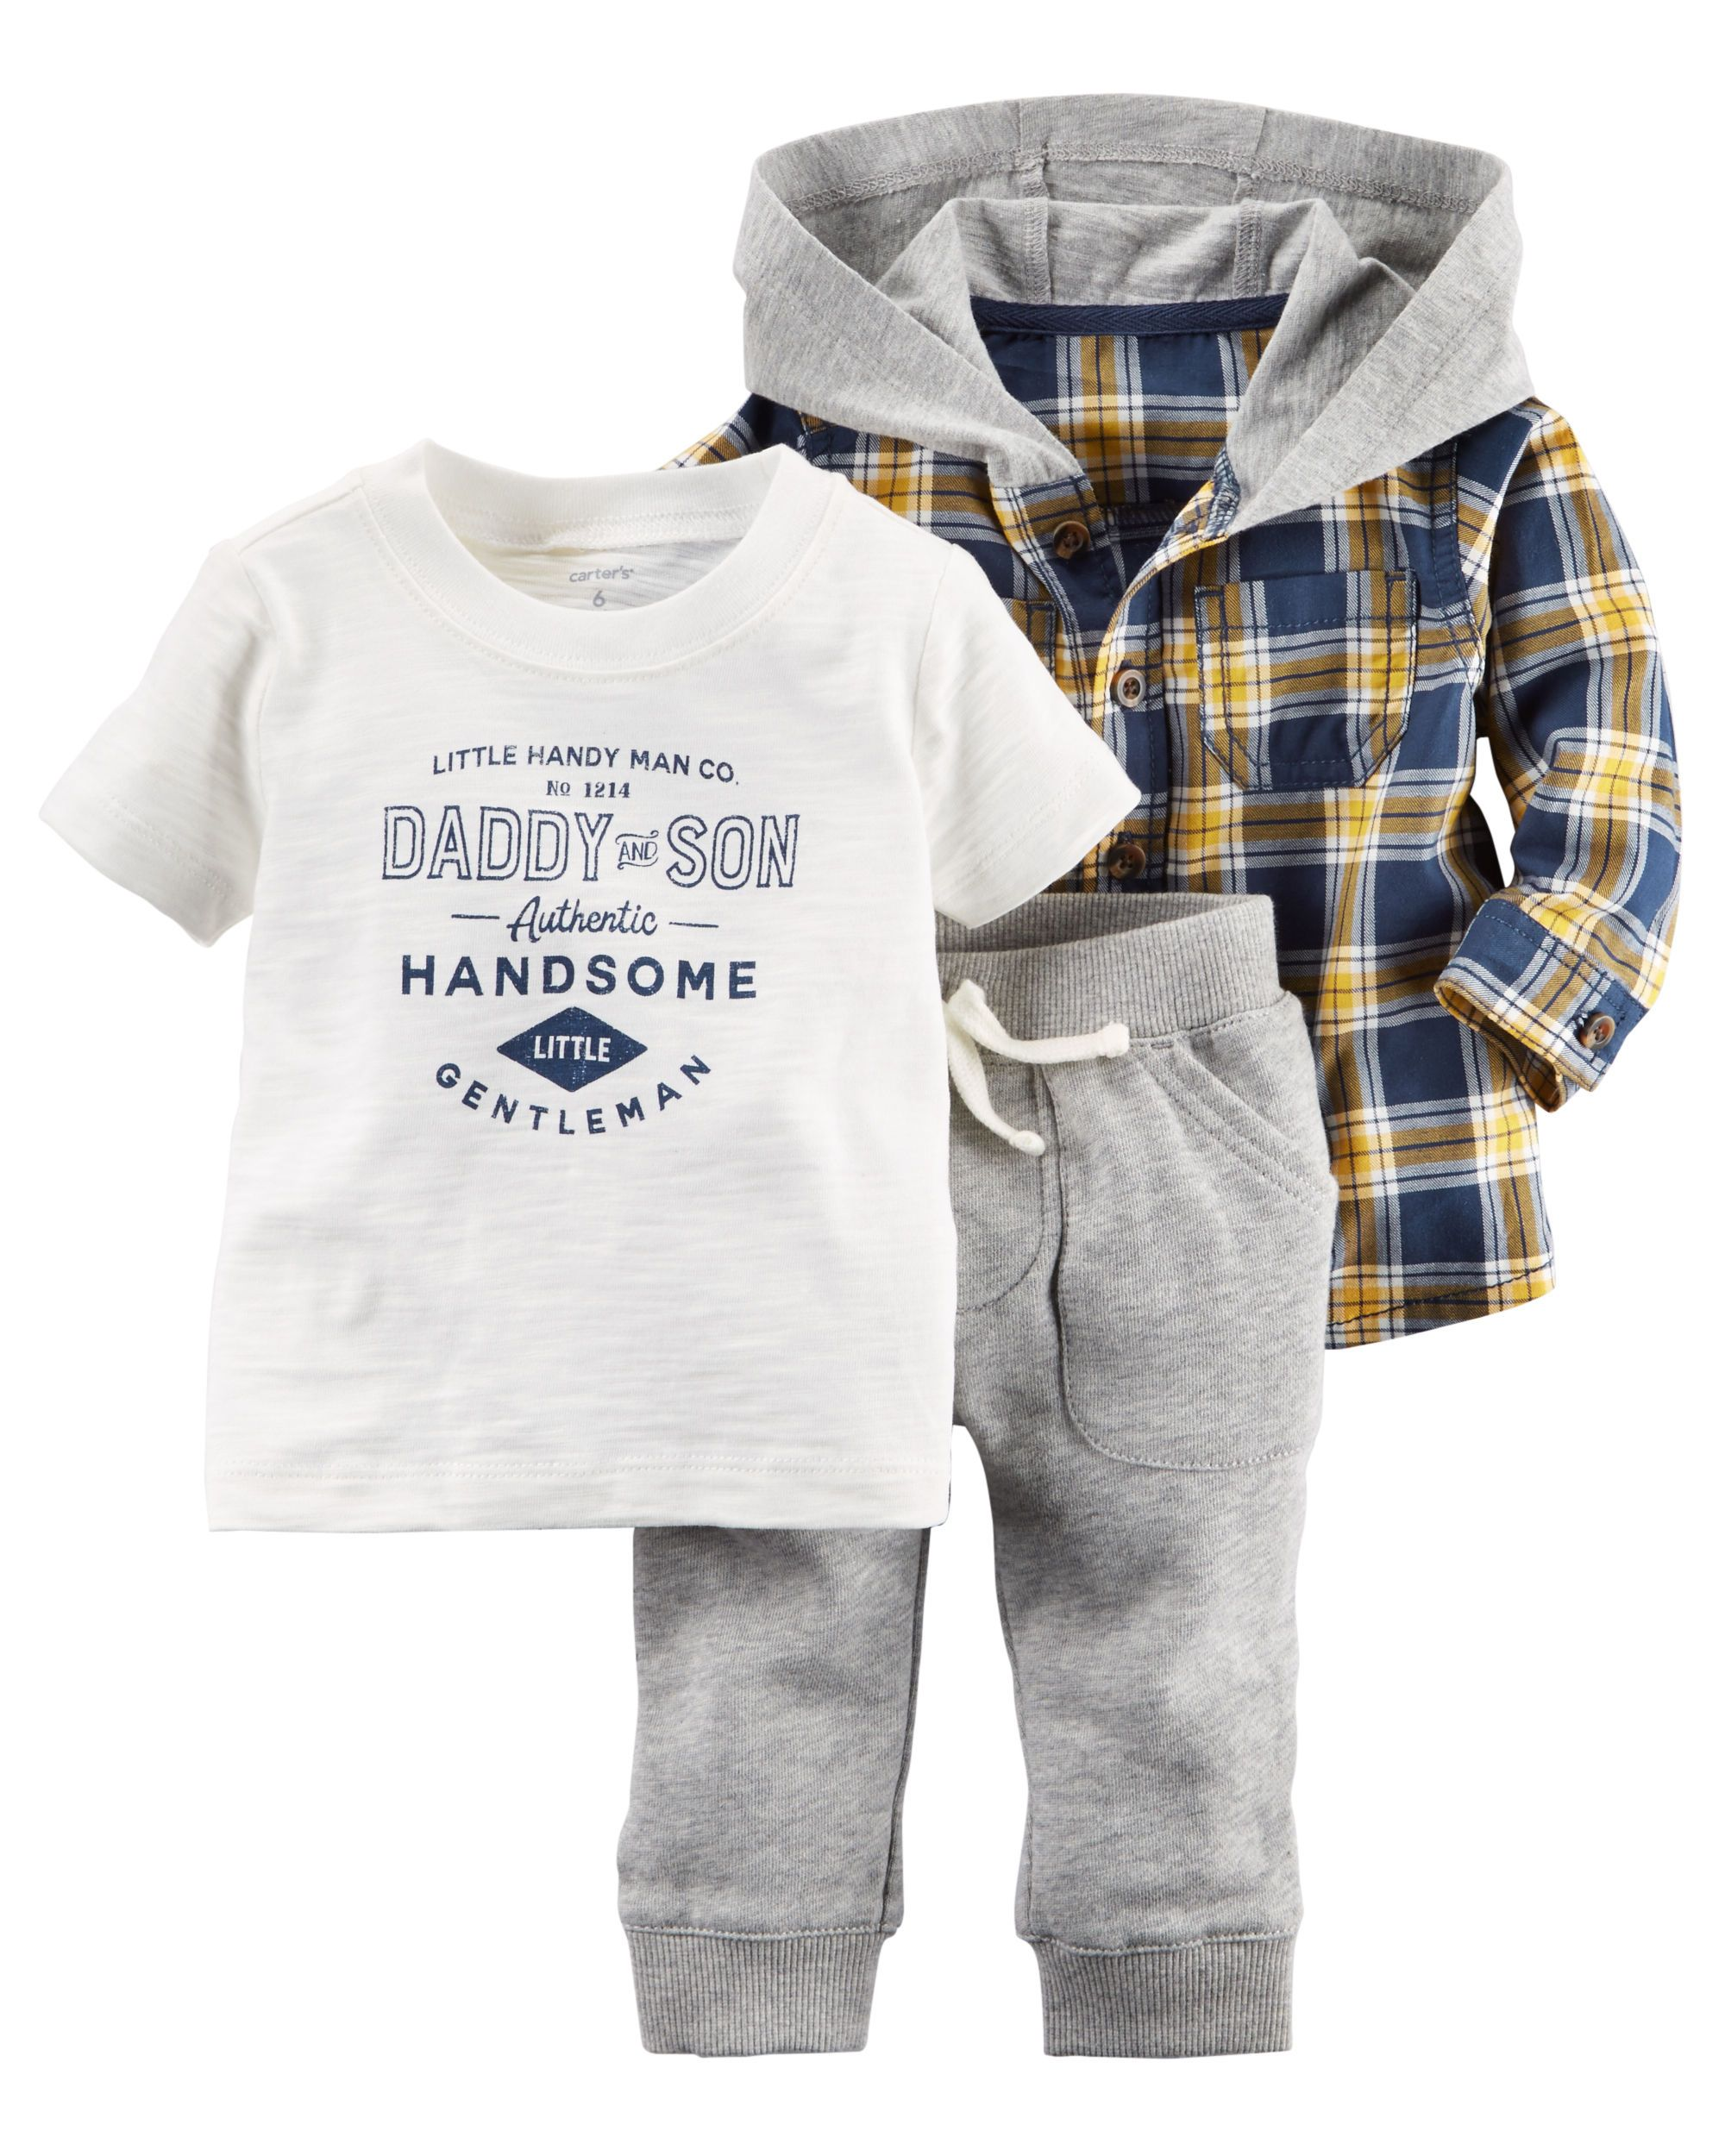 Flannel t shirts  Piece Hooded Shirt Set  Shirt jacket Flannel shirts and French terry